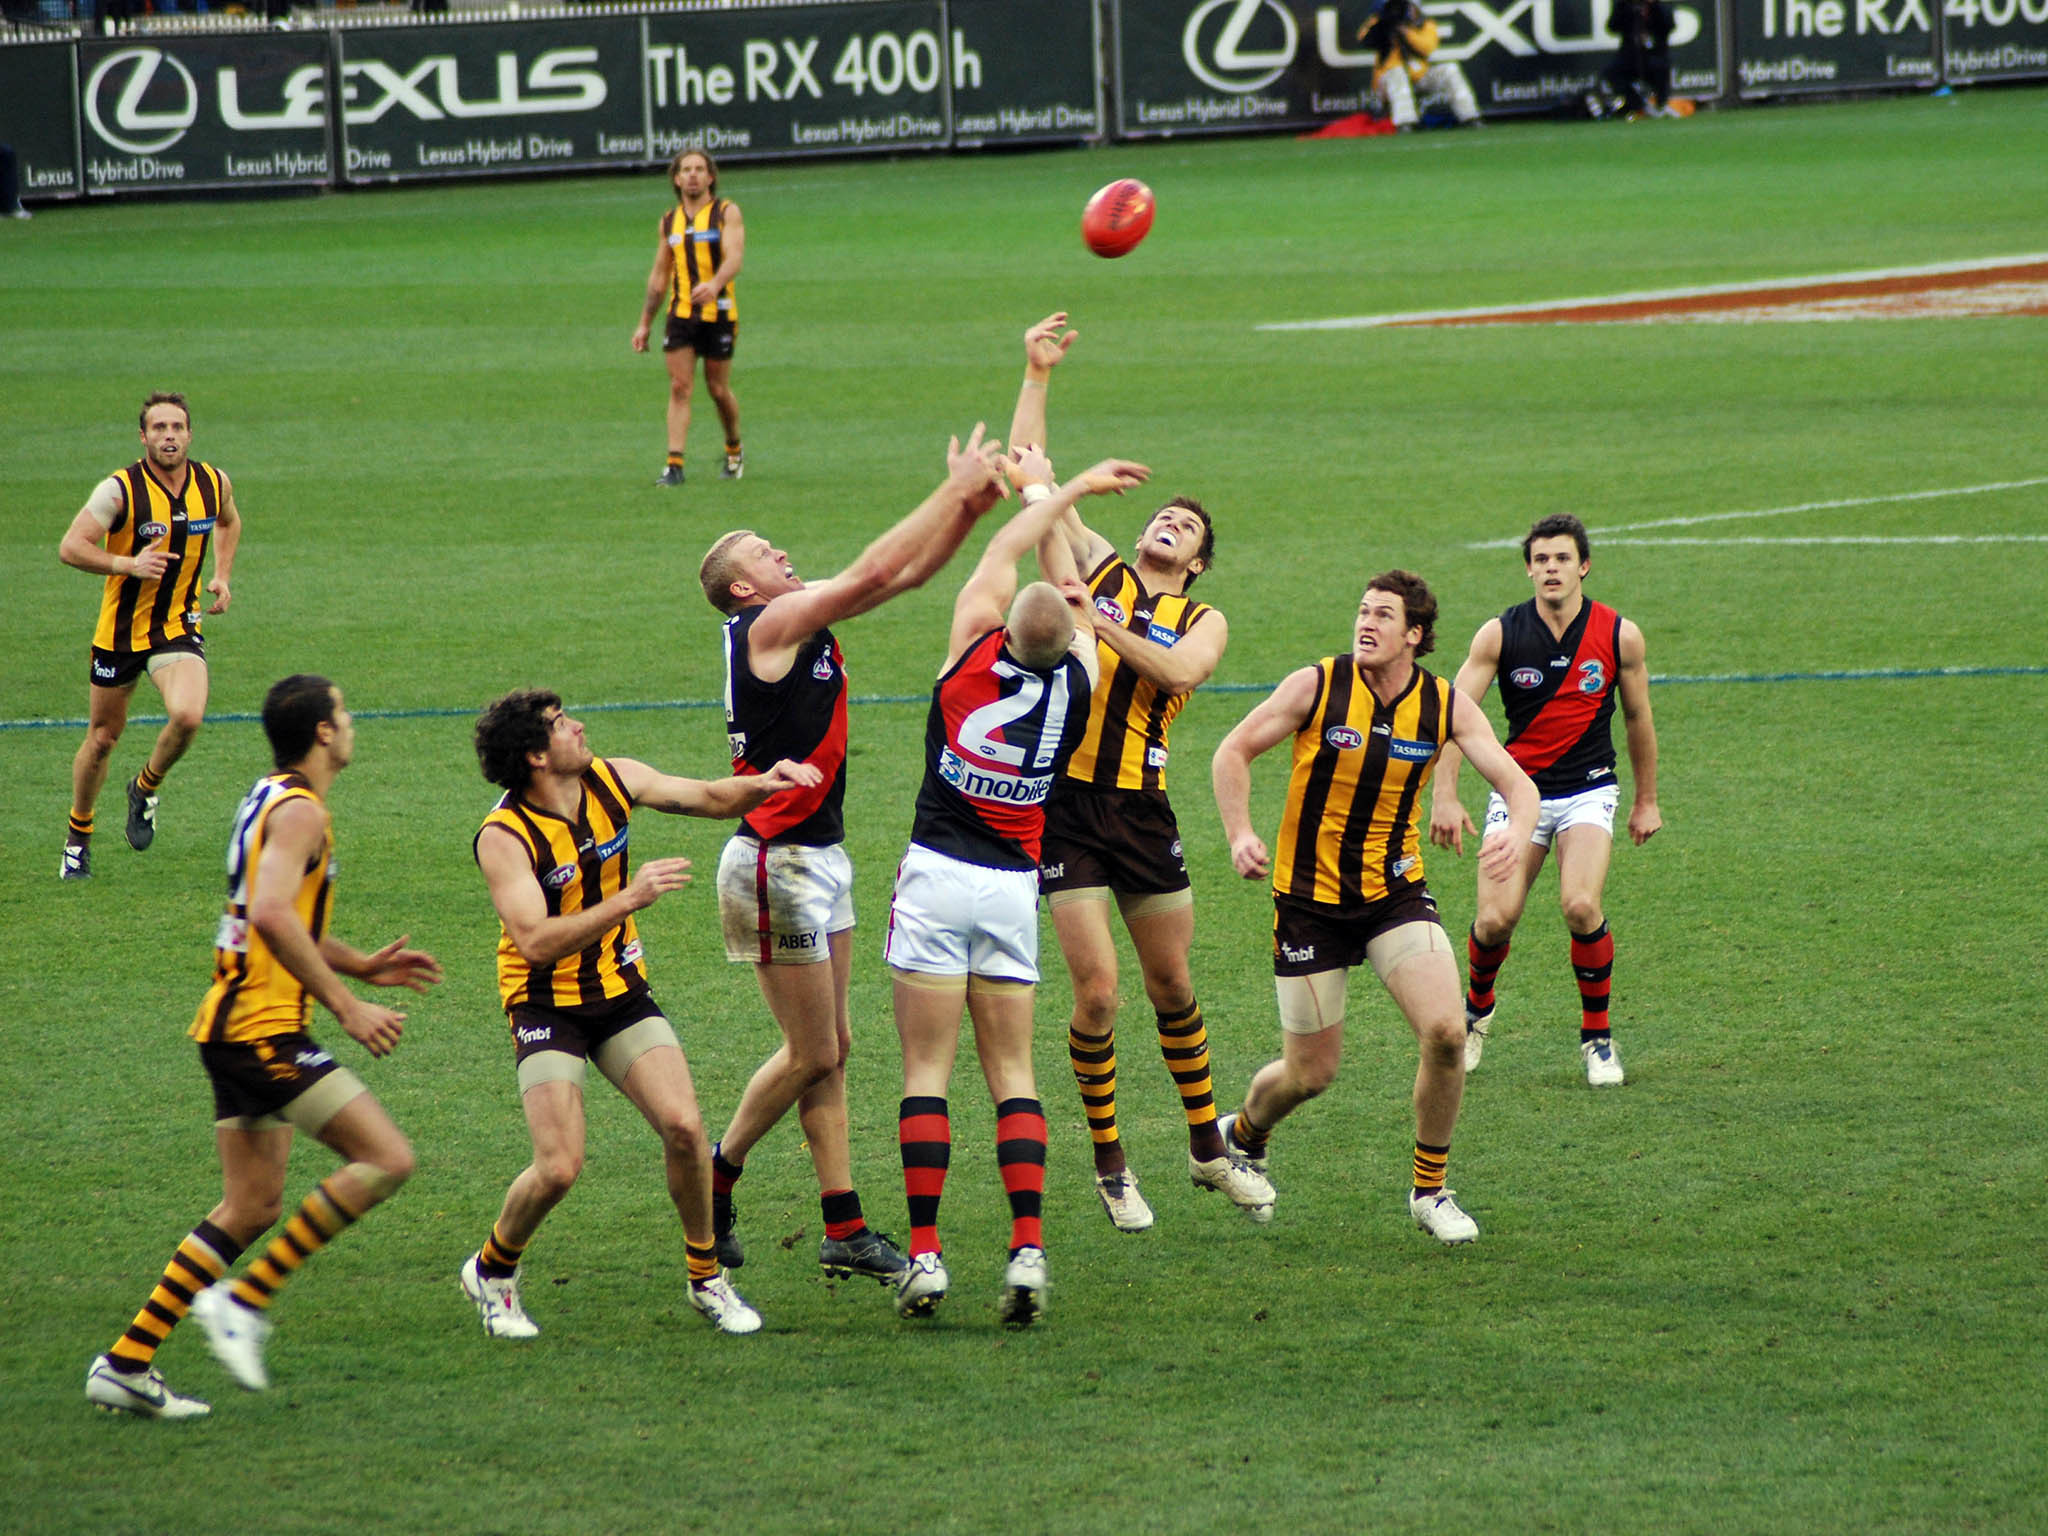 See an AFL game at the MCG